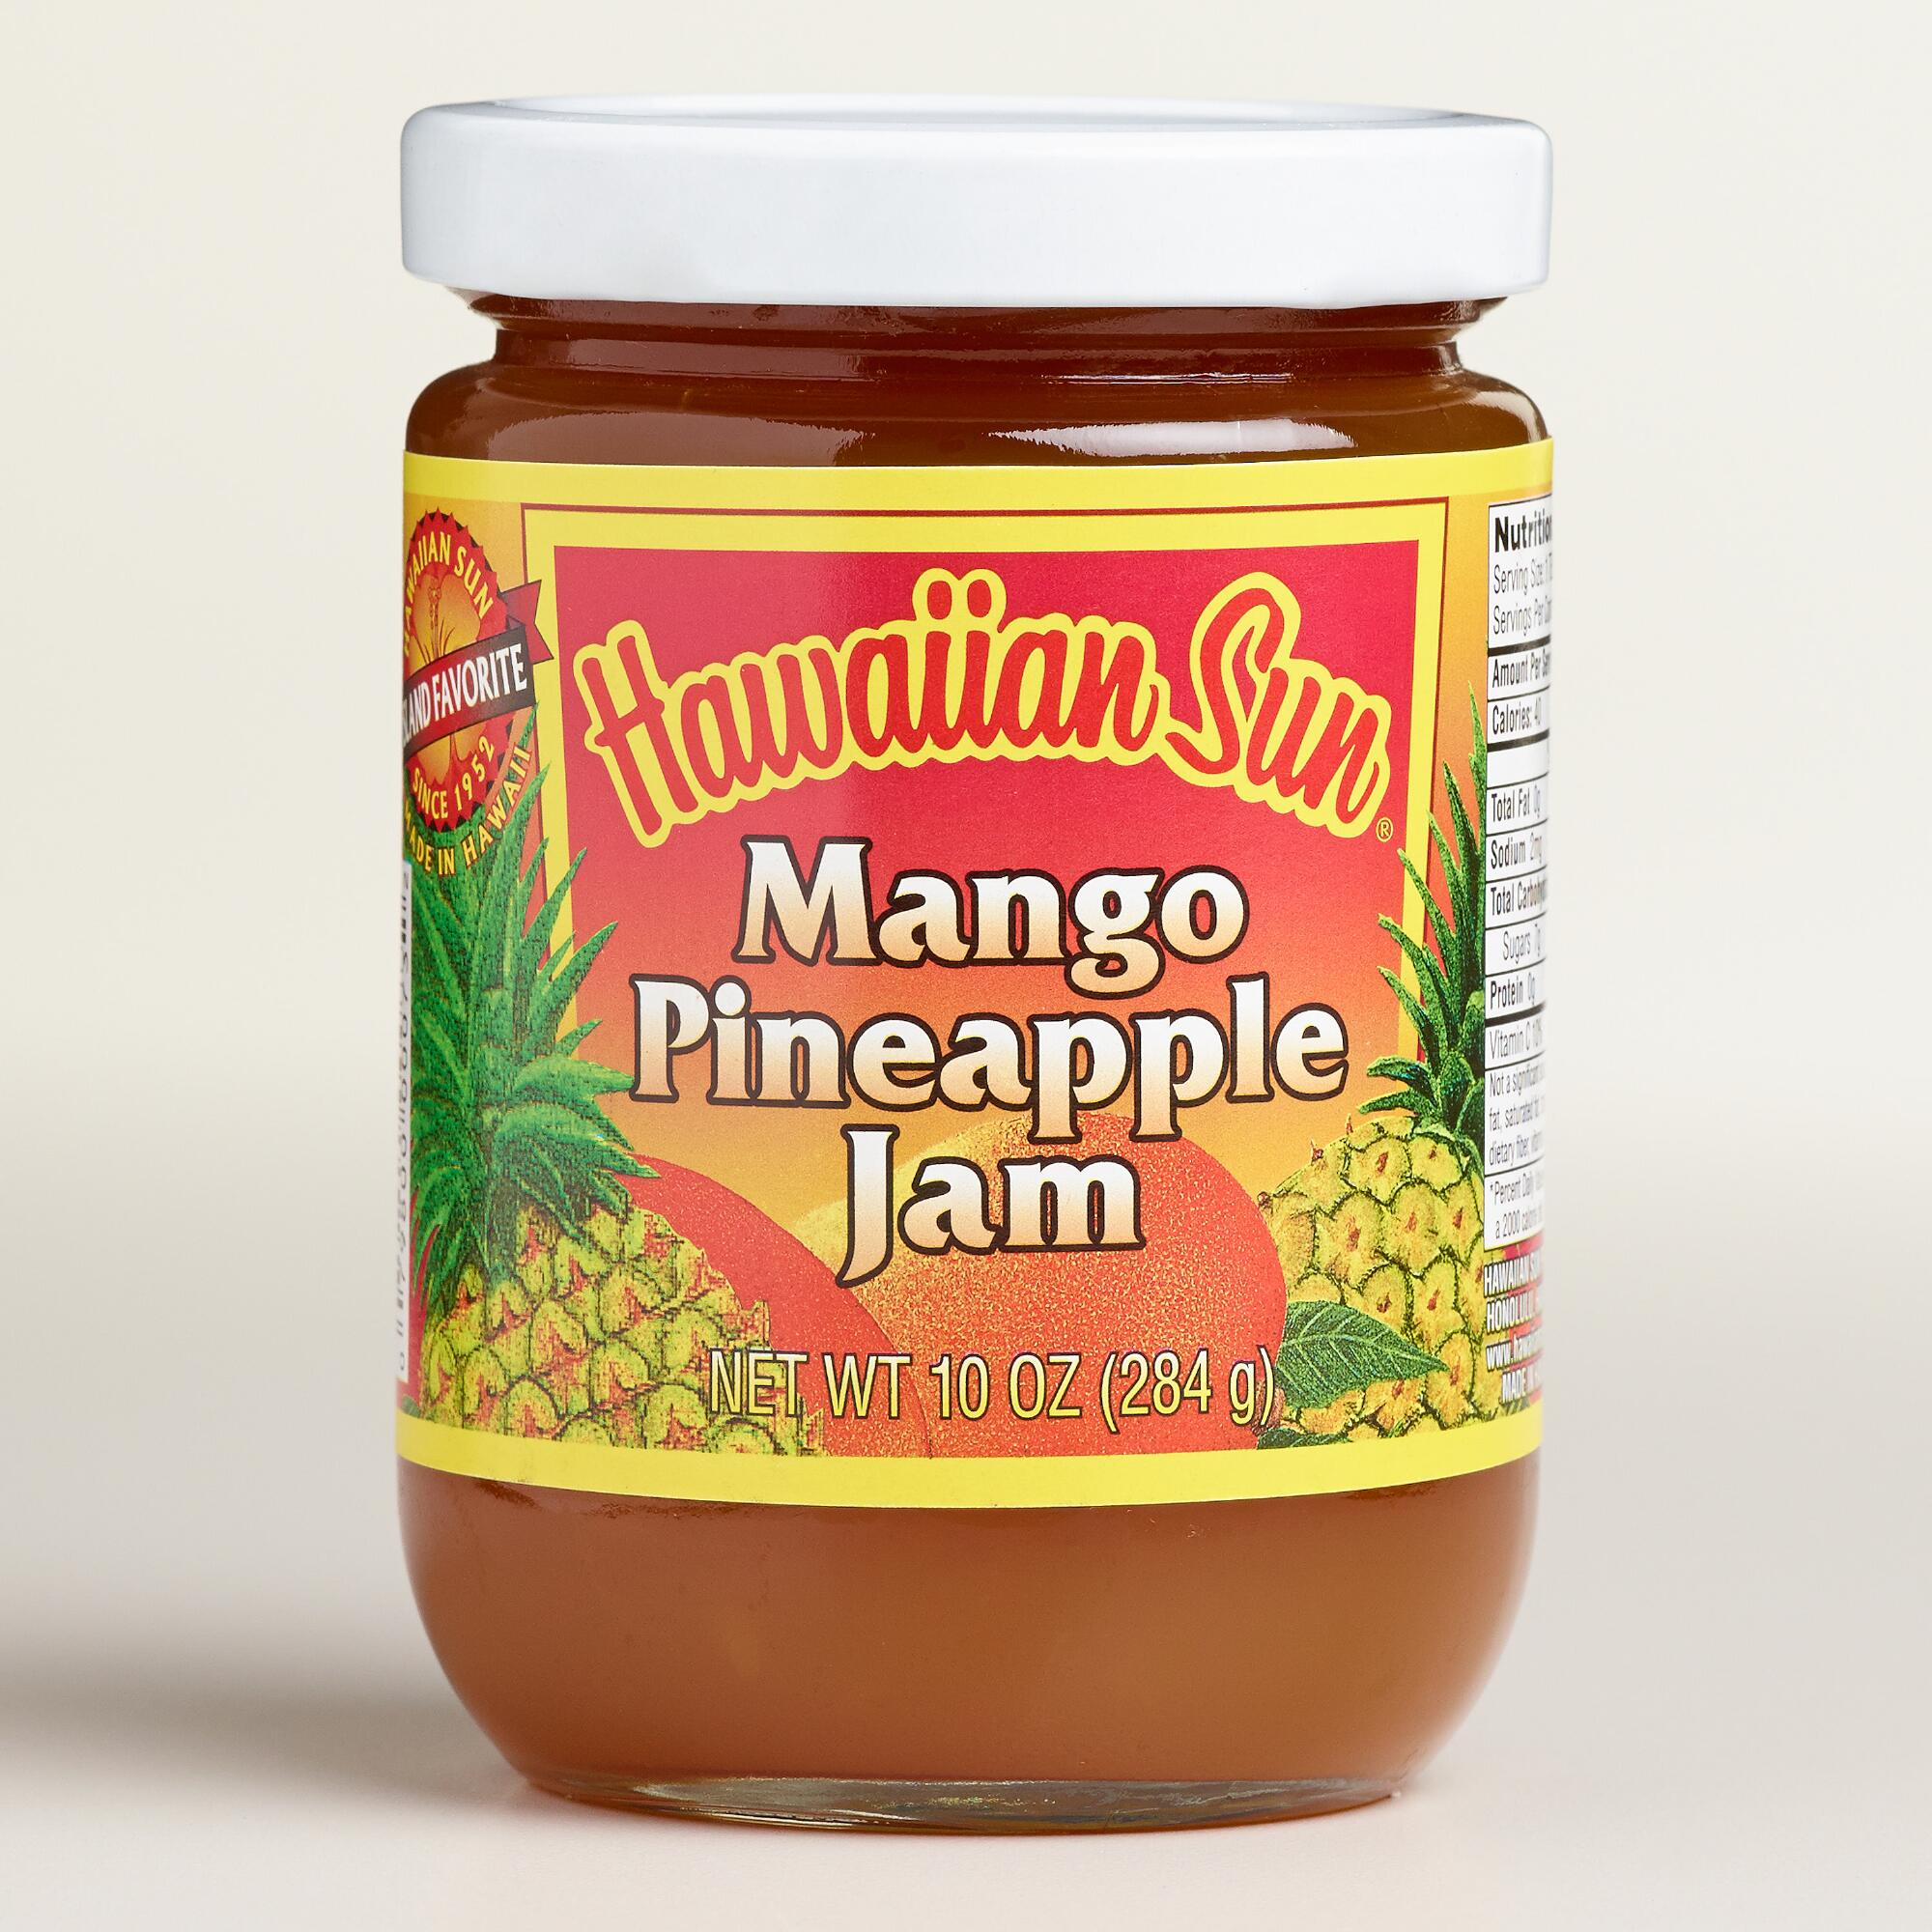 Pineapple and mango jam